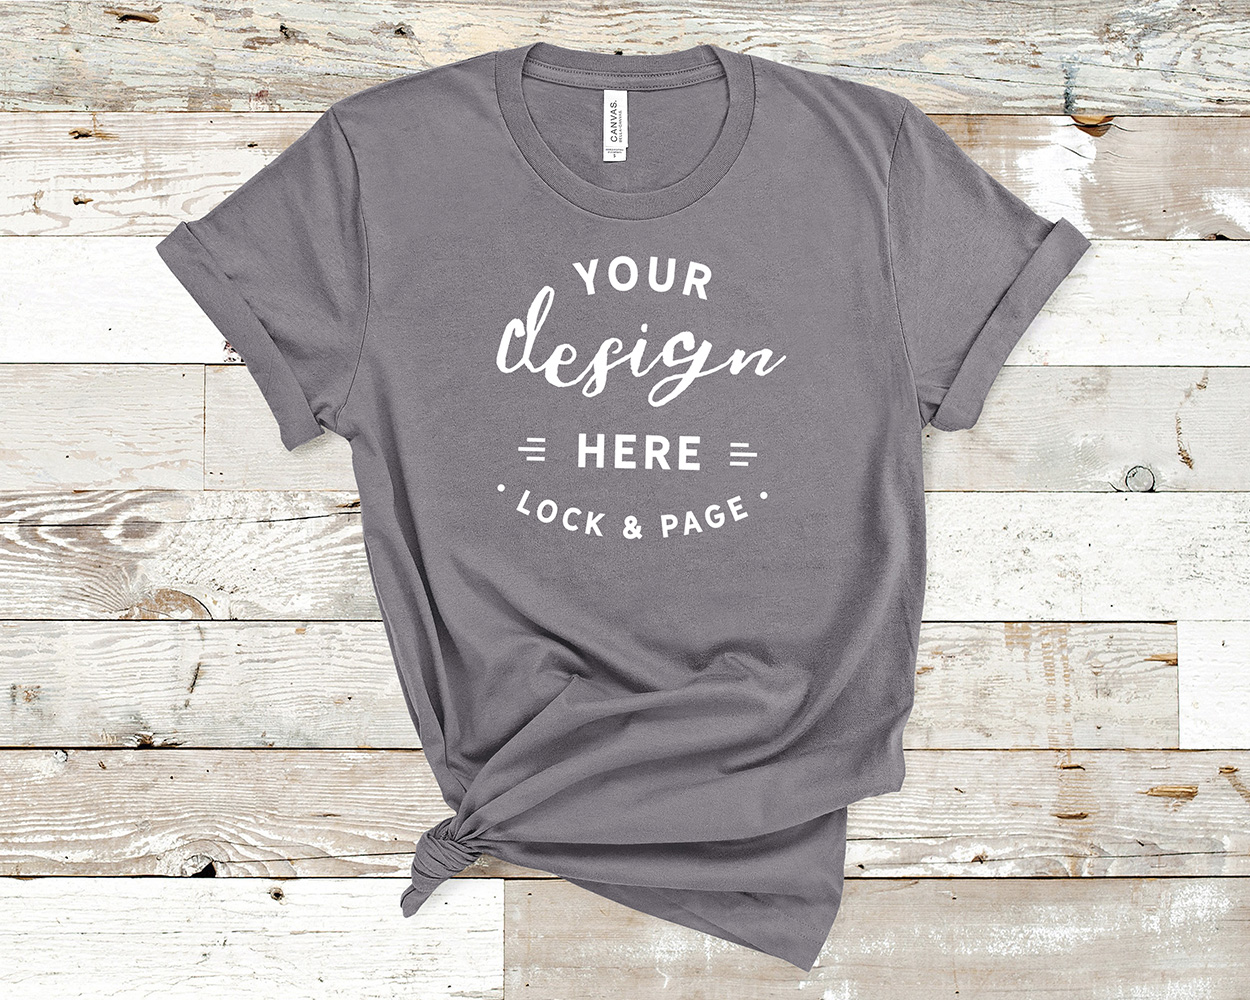 Bella Canvas 3001 Mockup T-Shirt Bundle All Colors On Wood example image 19